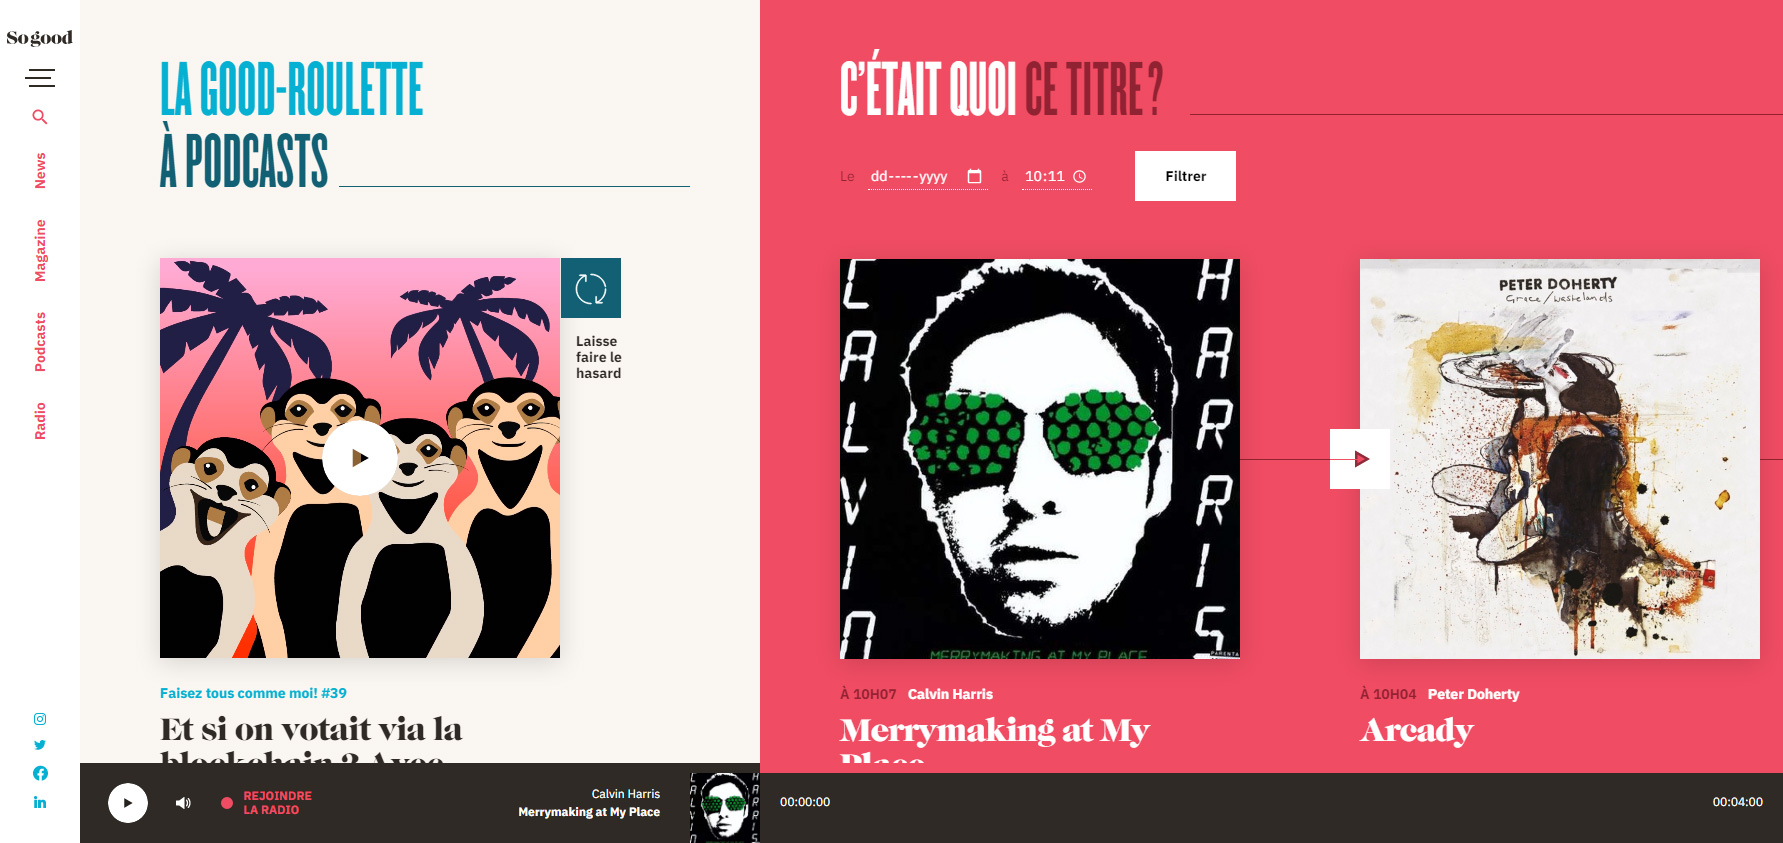 So Good - Website of the Day